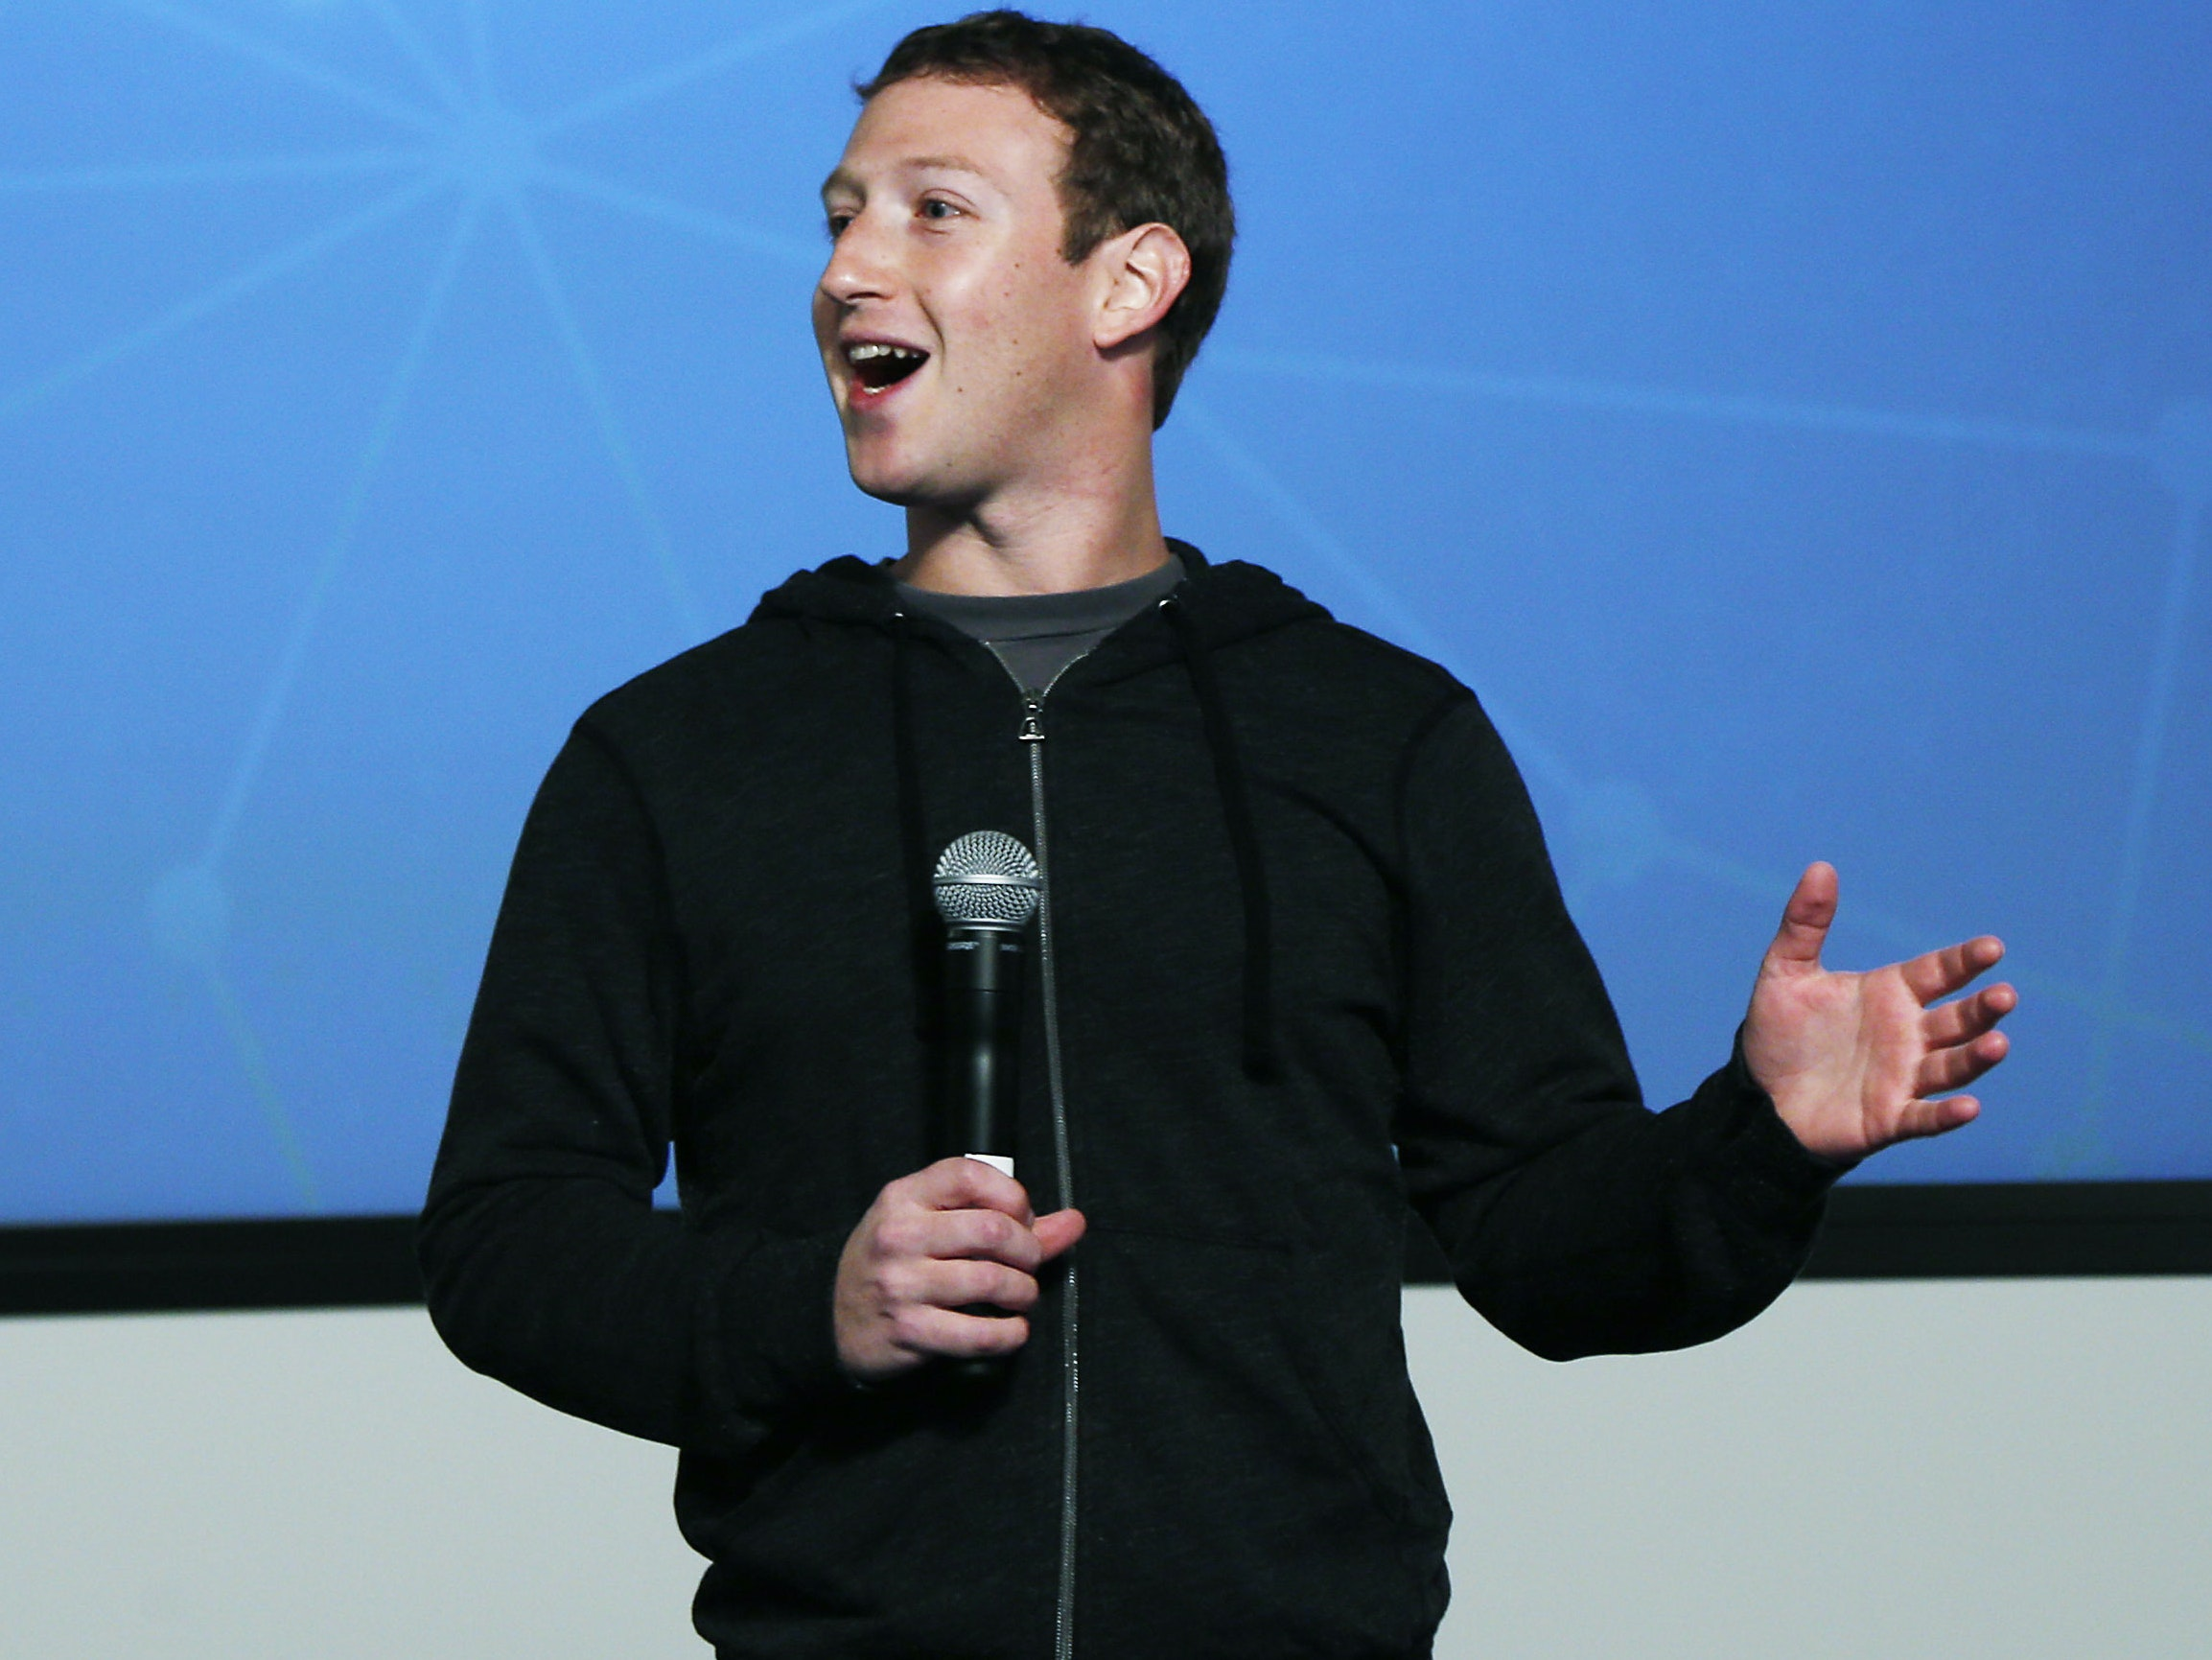 Facebook Chairman and Chief Executive Mark Zuckerberg introduces Graph Search features during a presentation January 15, 2013 in Menlo Park. Facebook announced a search function that works within the website and allows users to search content that people have shared with you or is public.